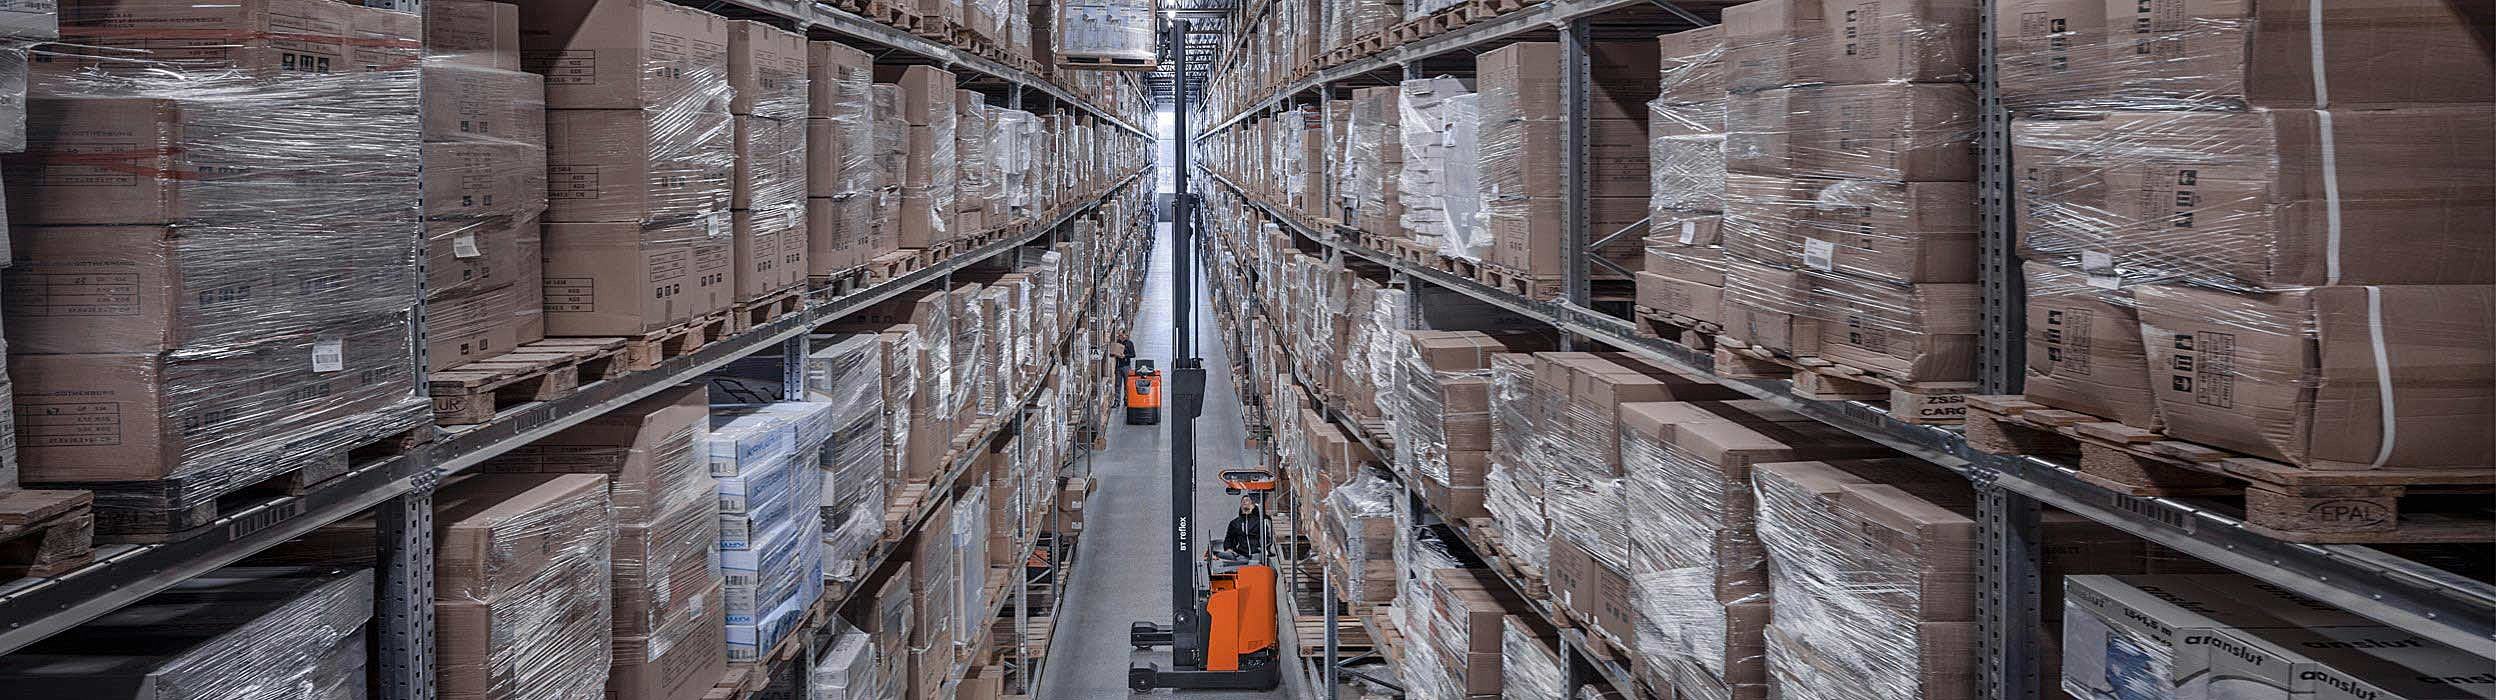 BT Reflex lifting high in large warehouse